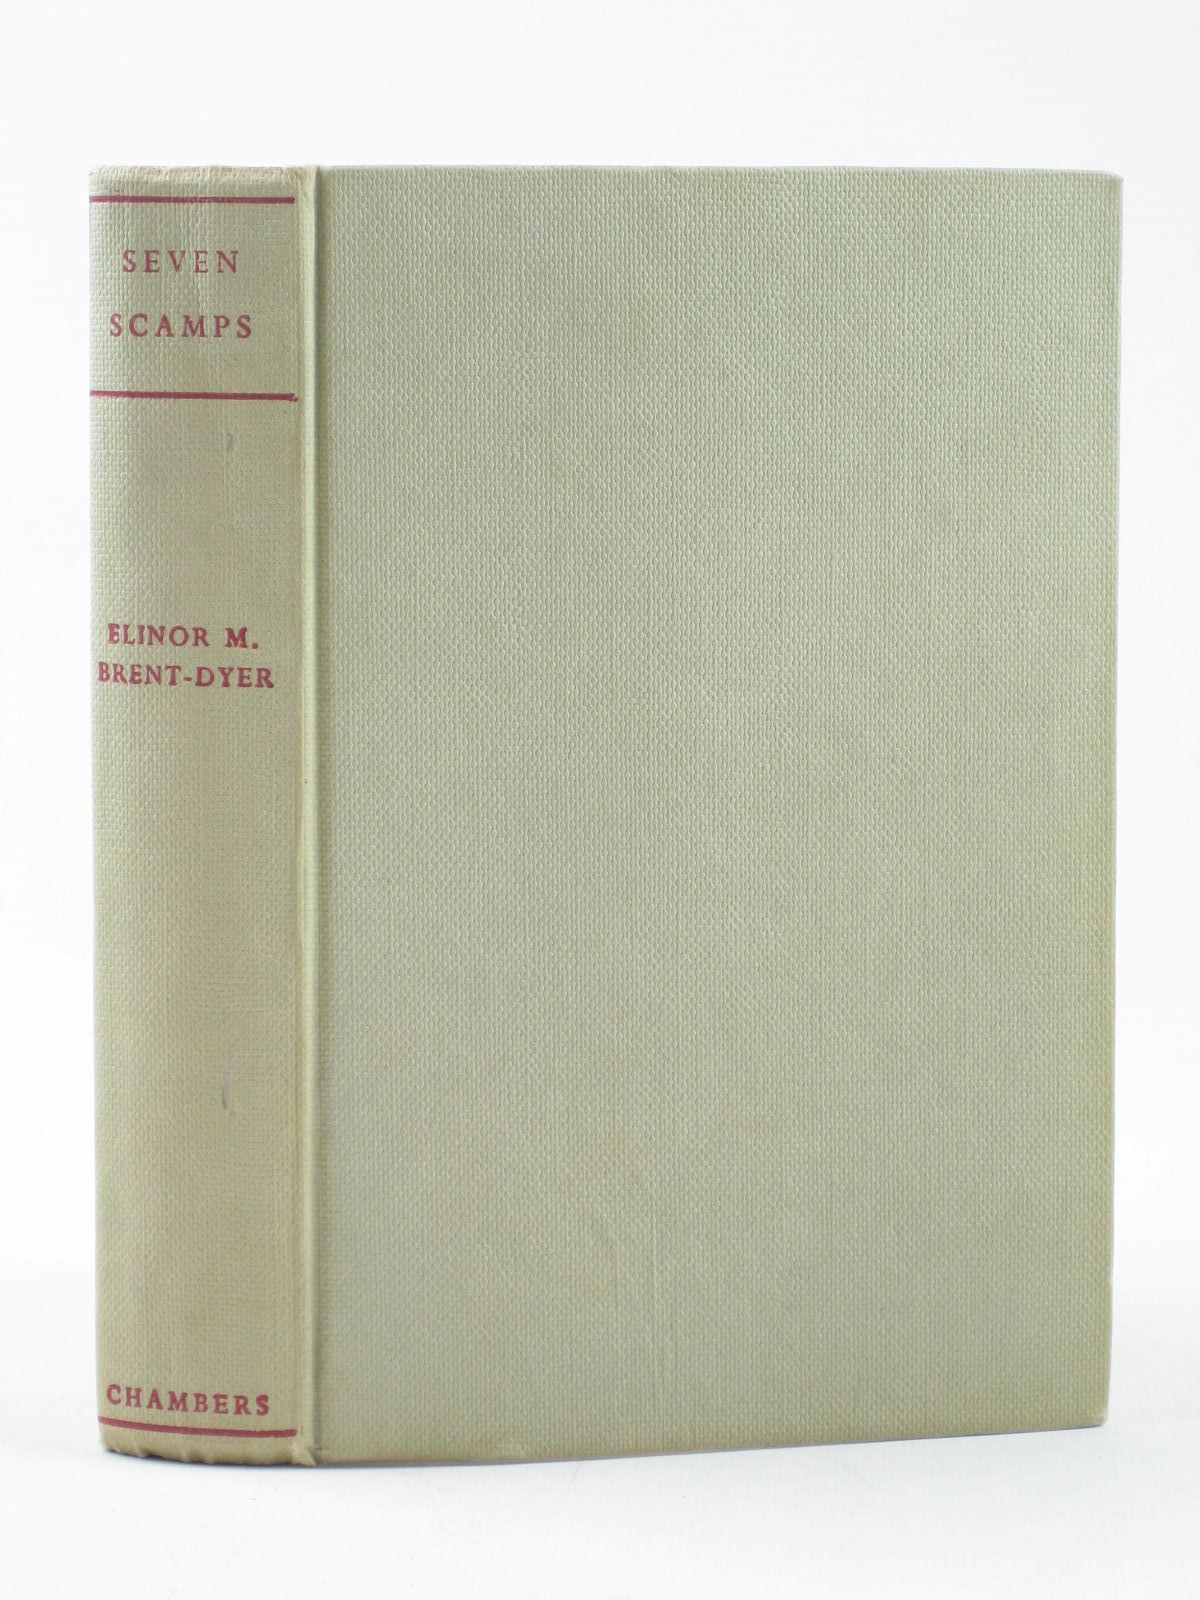 Photo of SEVEN SCAMPS written by Brent-Dyer, Elinor M. published by W. & R. Chambers Limited (STOCK CODE: 1311805)  for sale by Stella & Rose's Books